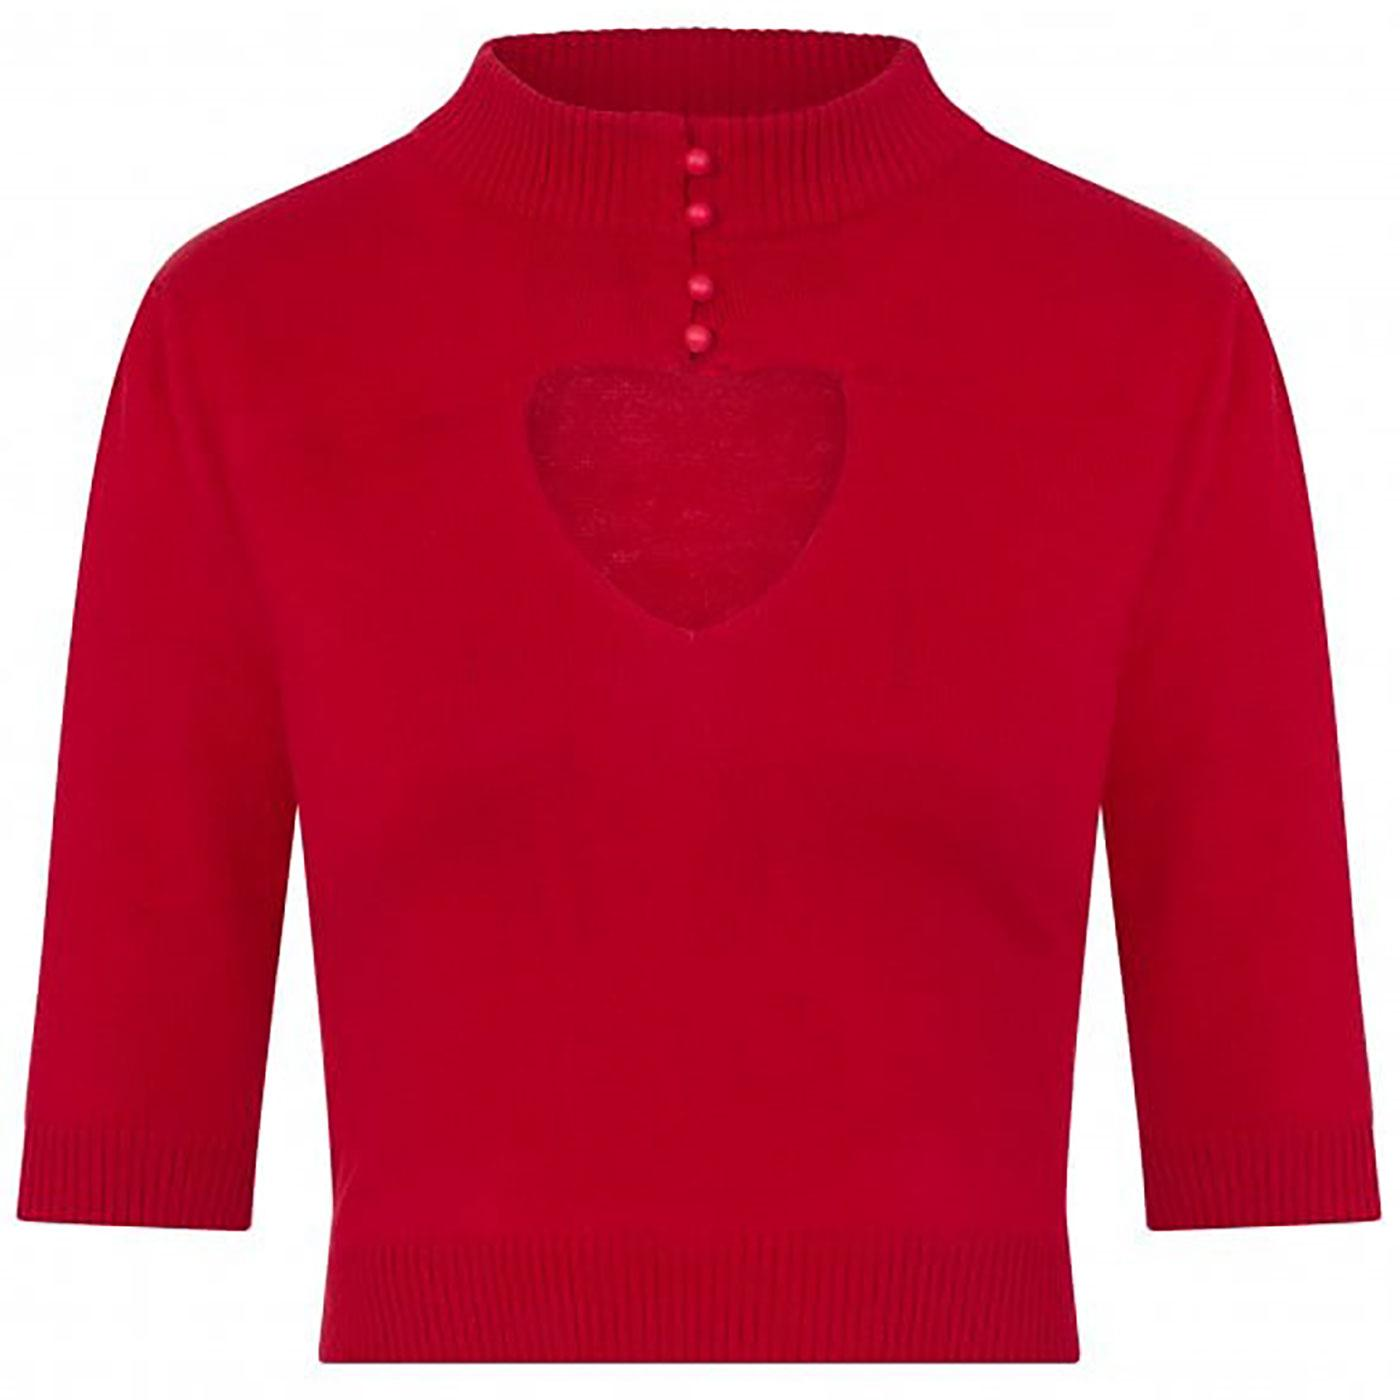 Shirley COLLECTIF Cut Out Heart Knitted Top in Red